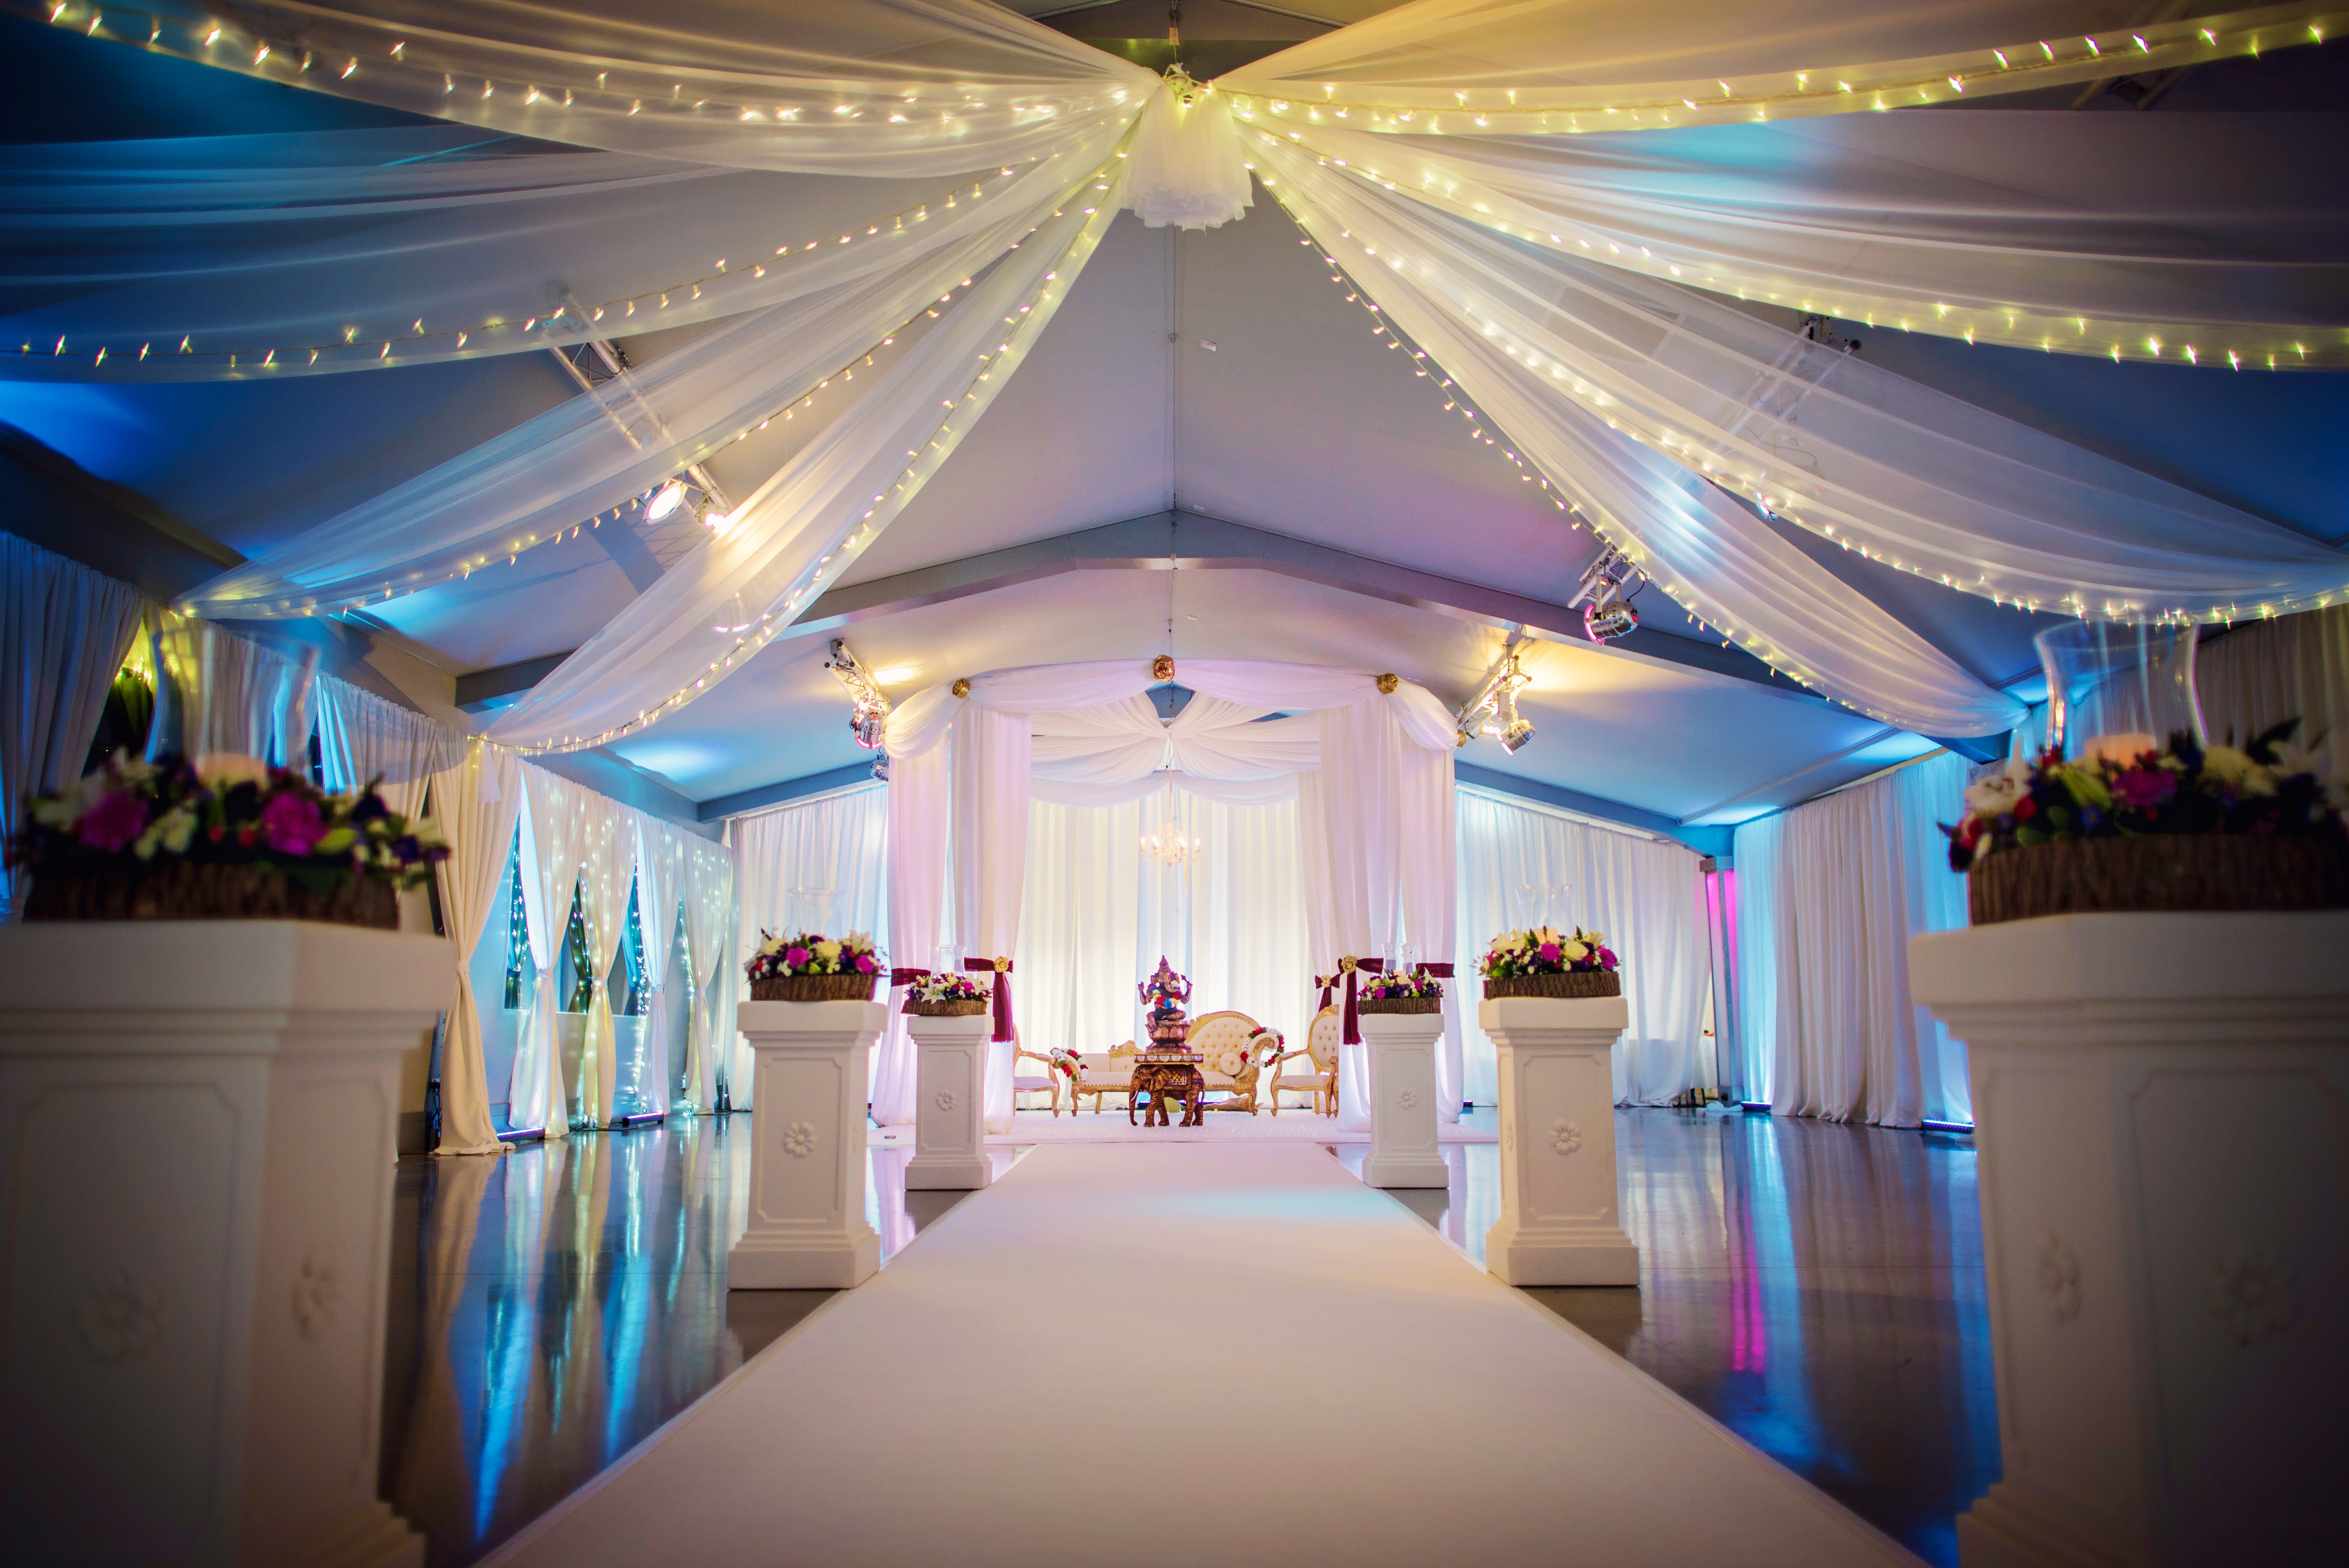 Ladywood Estate wedding decor with wall and ceiling drapes an